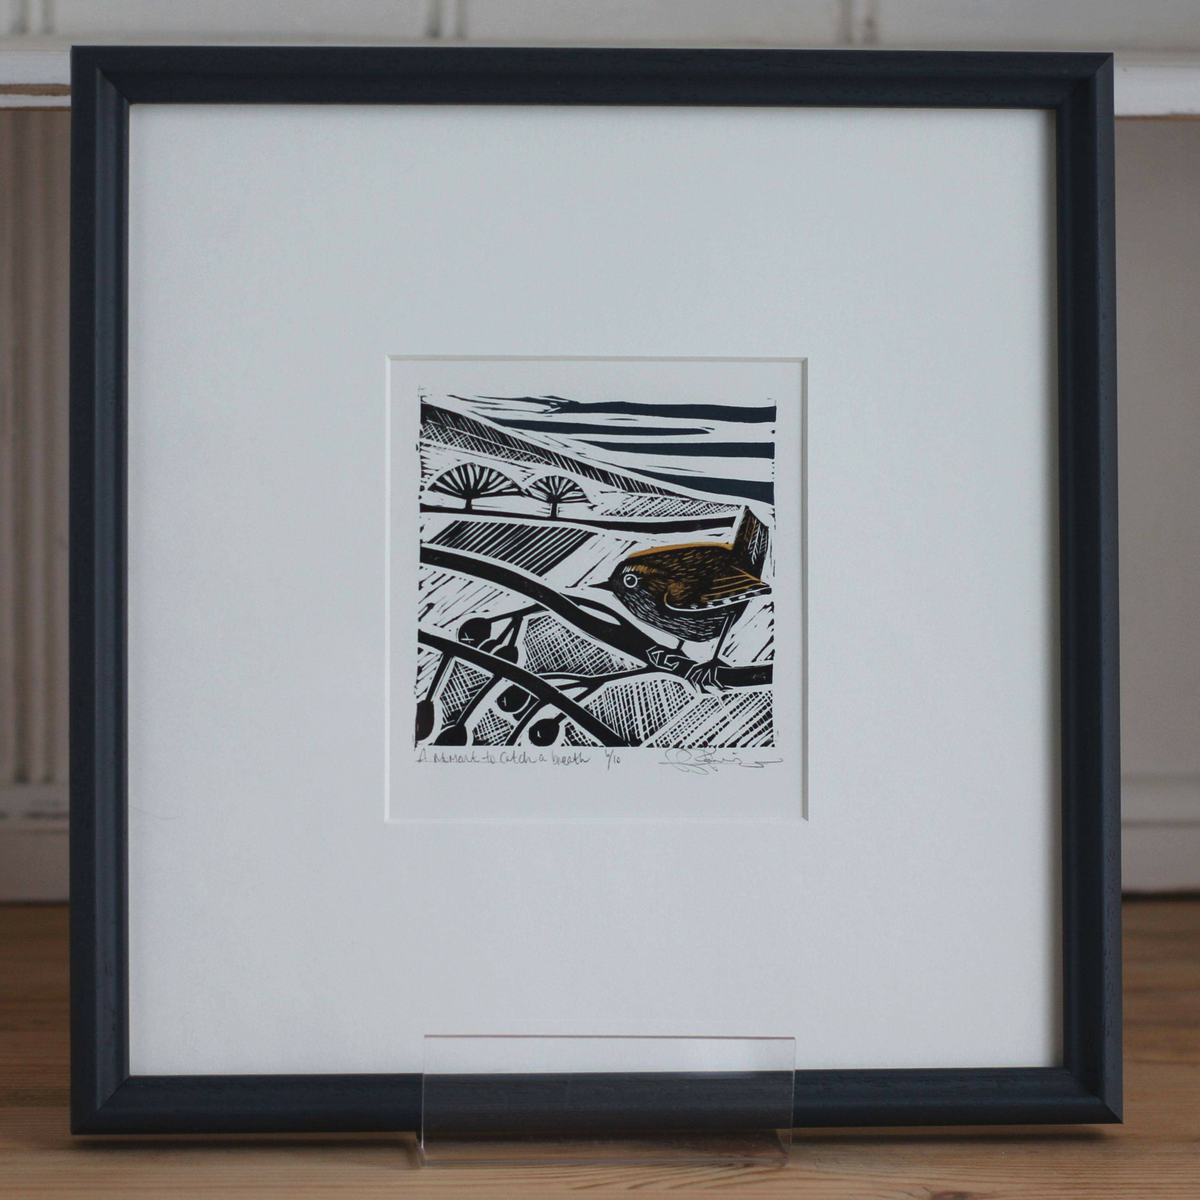 Image of 'A moment to catch a breath' framed linocut